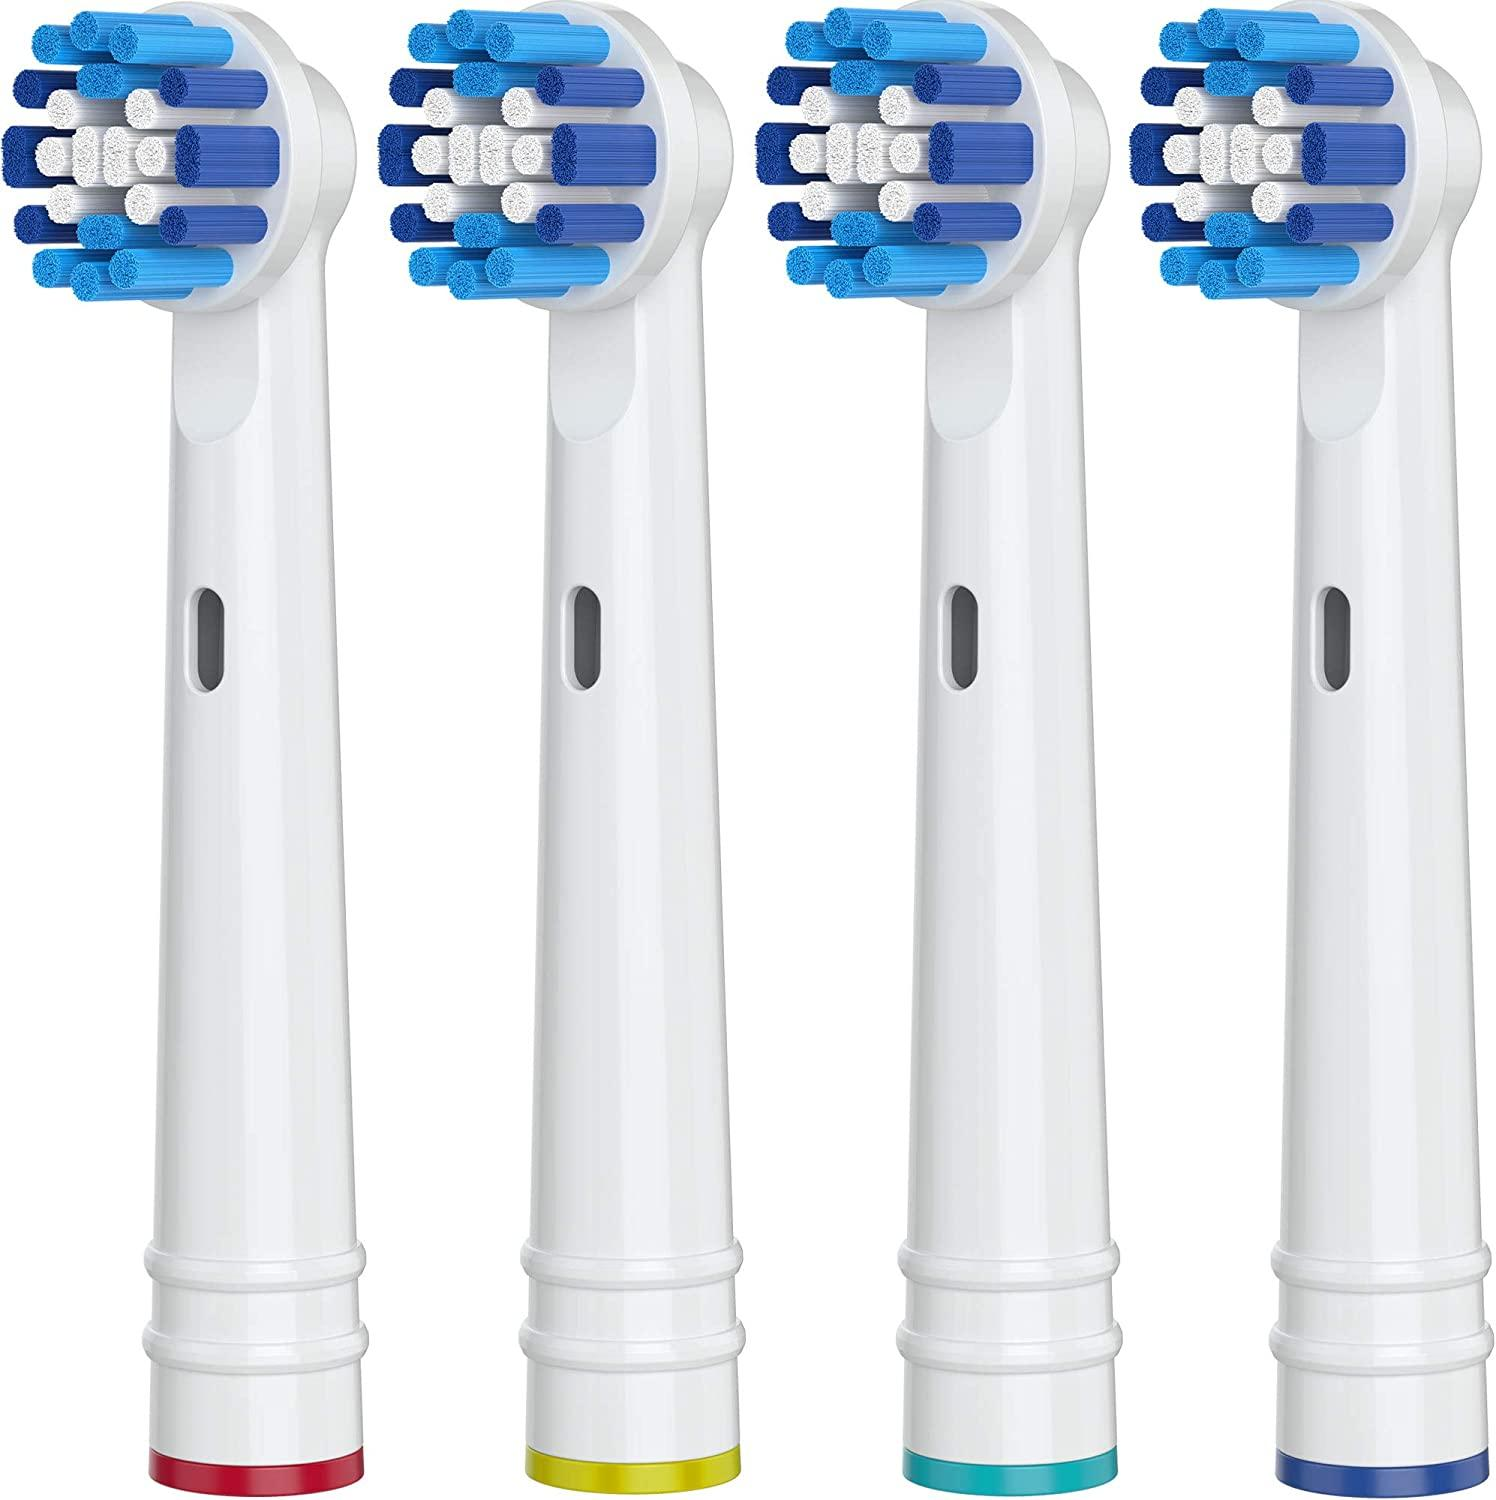 4pcs/Lot Replacement Toothbrush Heads For Oral B Whitening Braun Electric Head